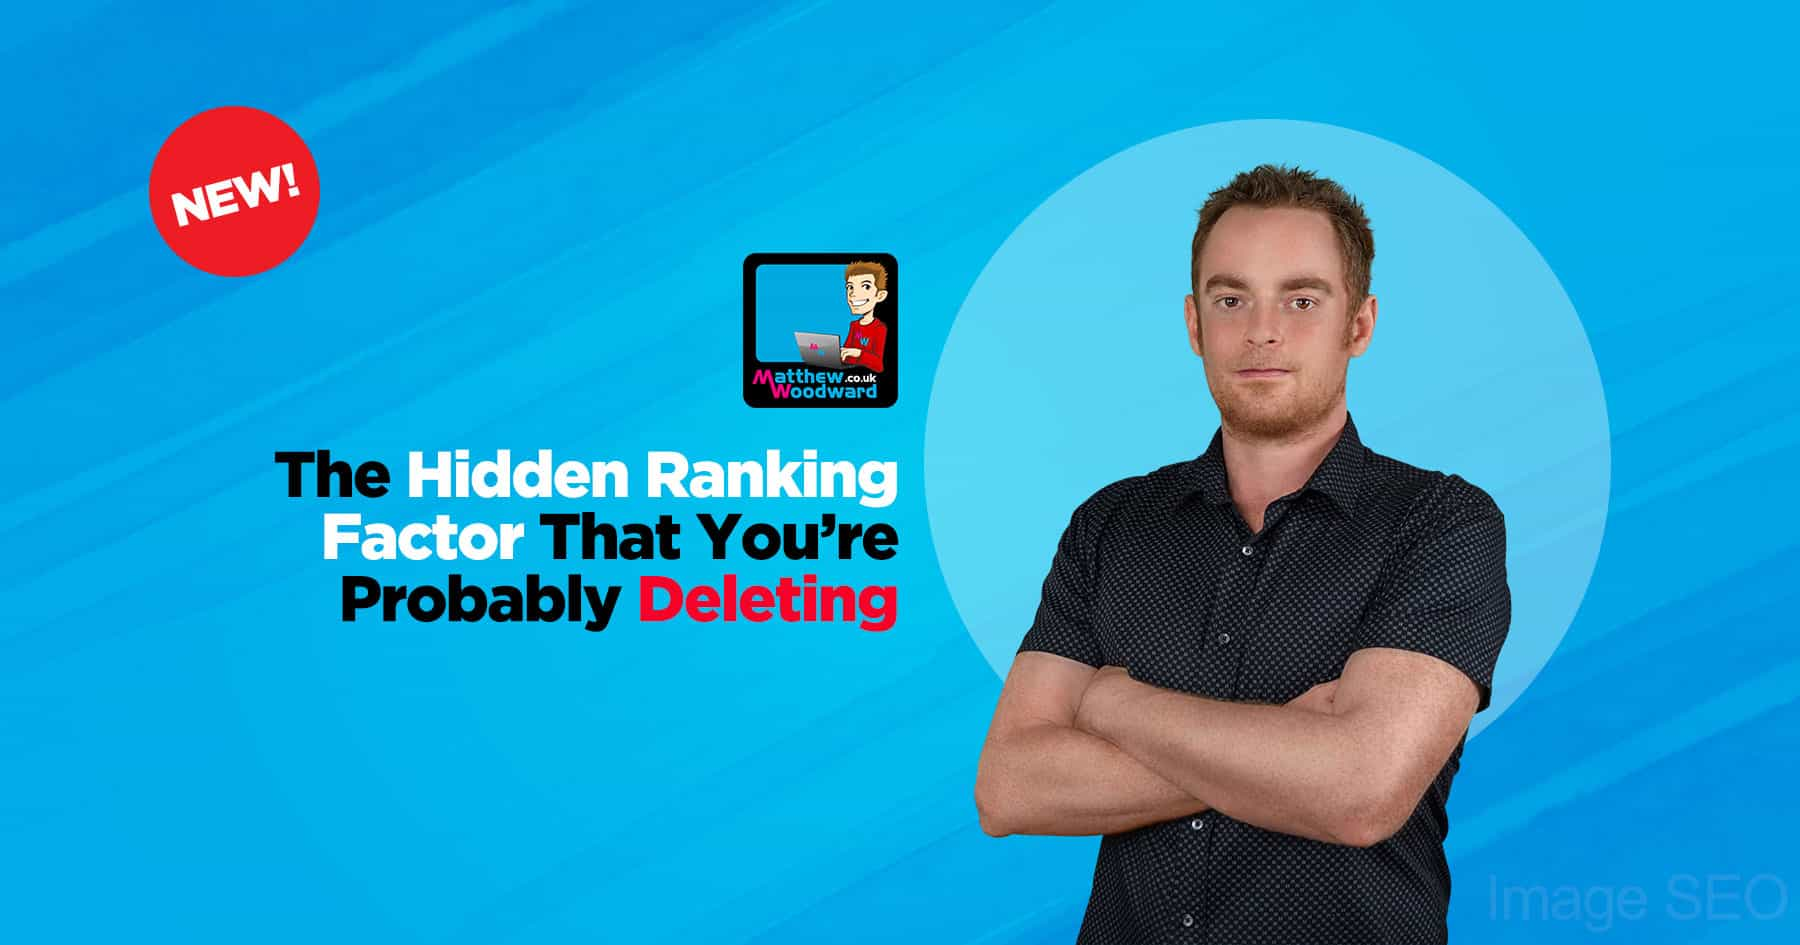 The Hidden SEO Ranking Factor That You're Probably Deleting